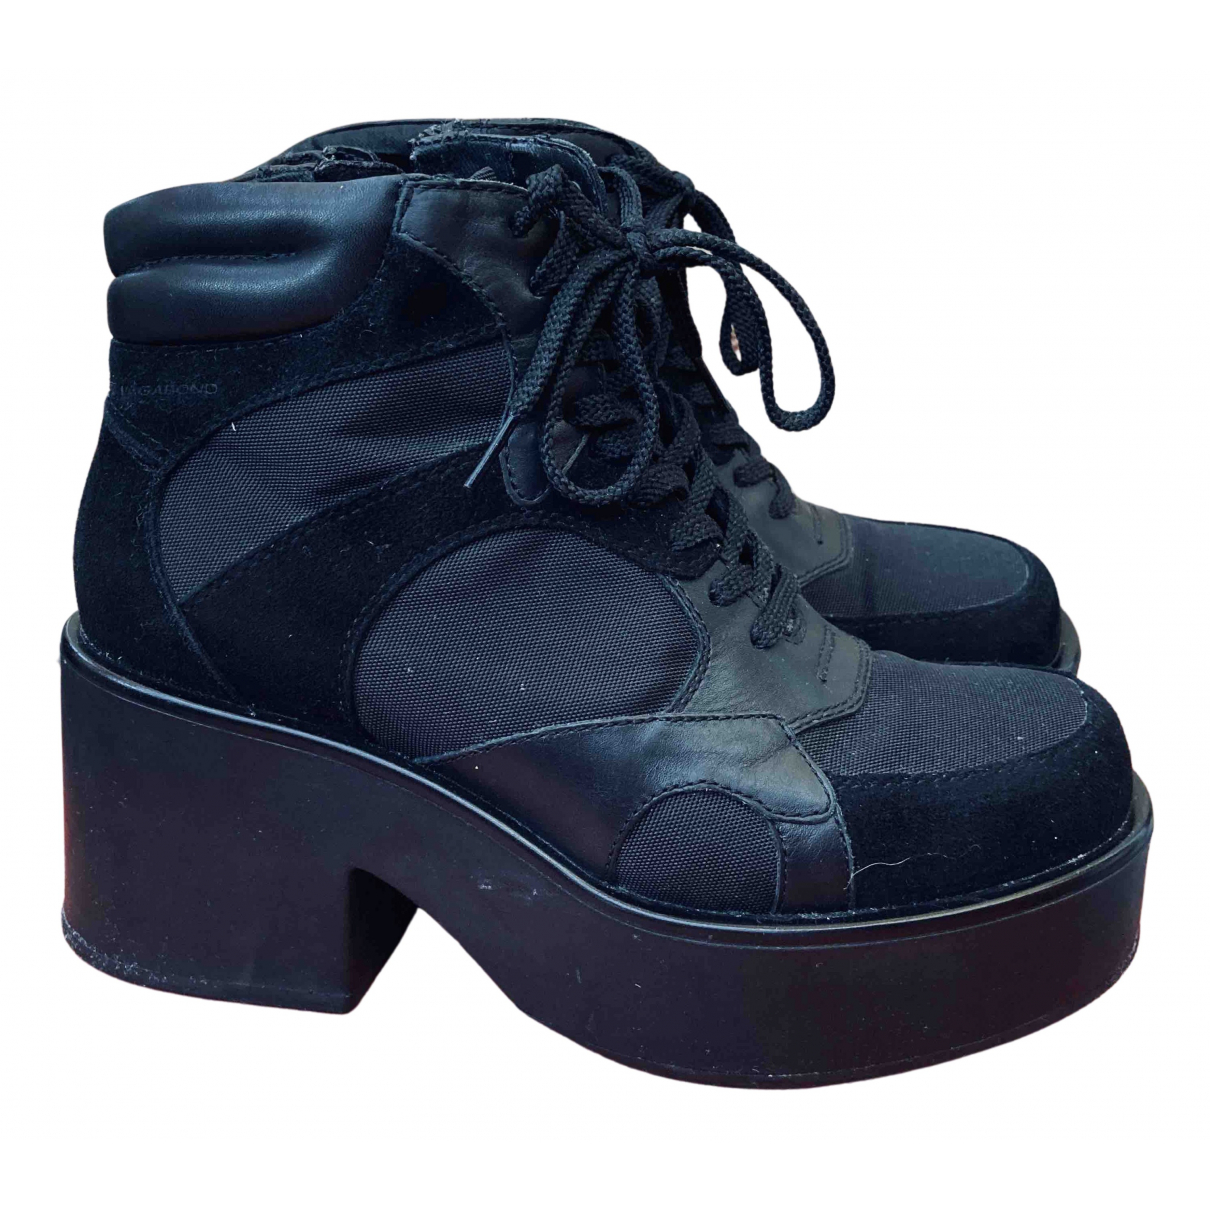 Vagabond N Black Leather Lace ups for Women 36 EU